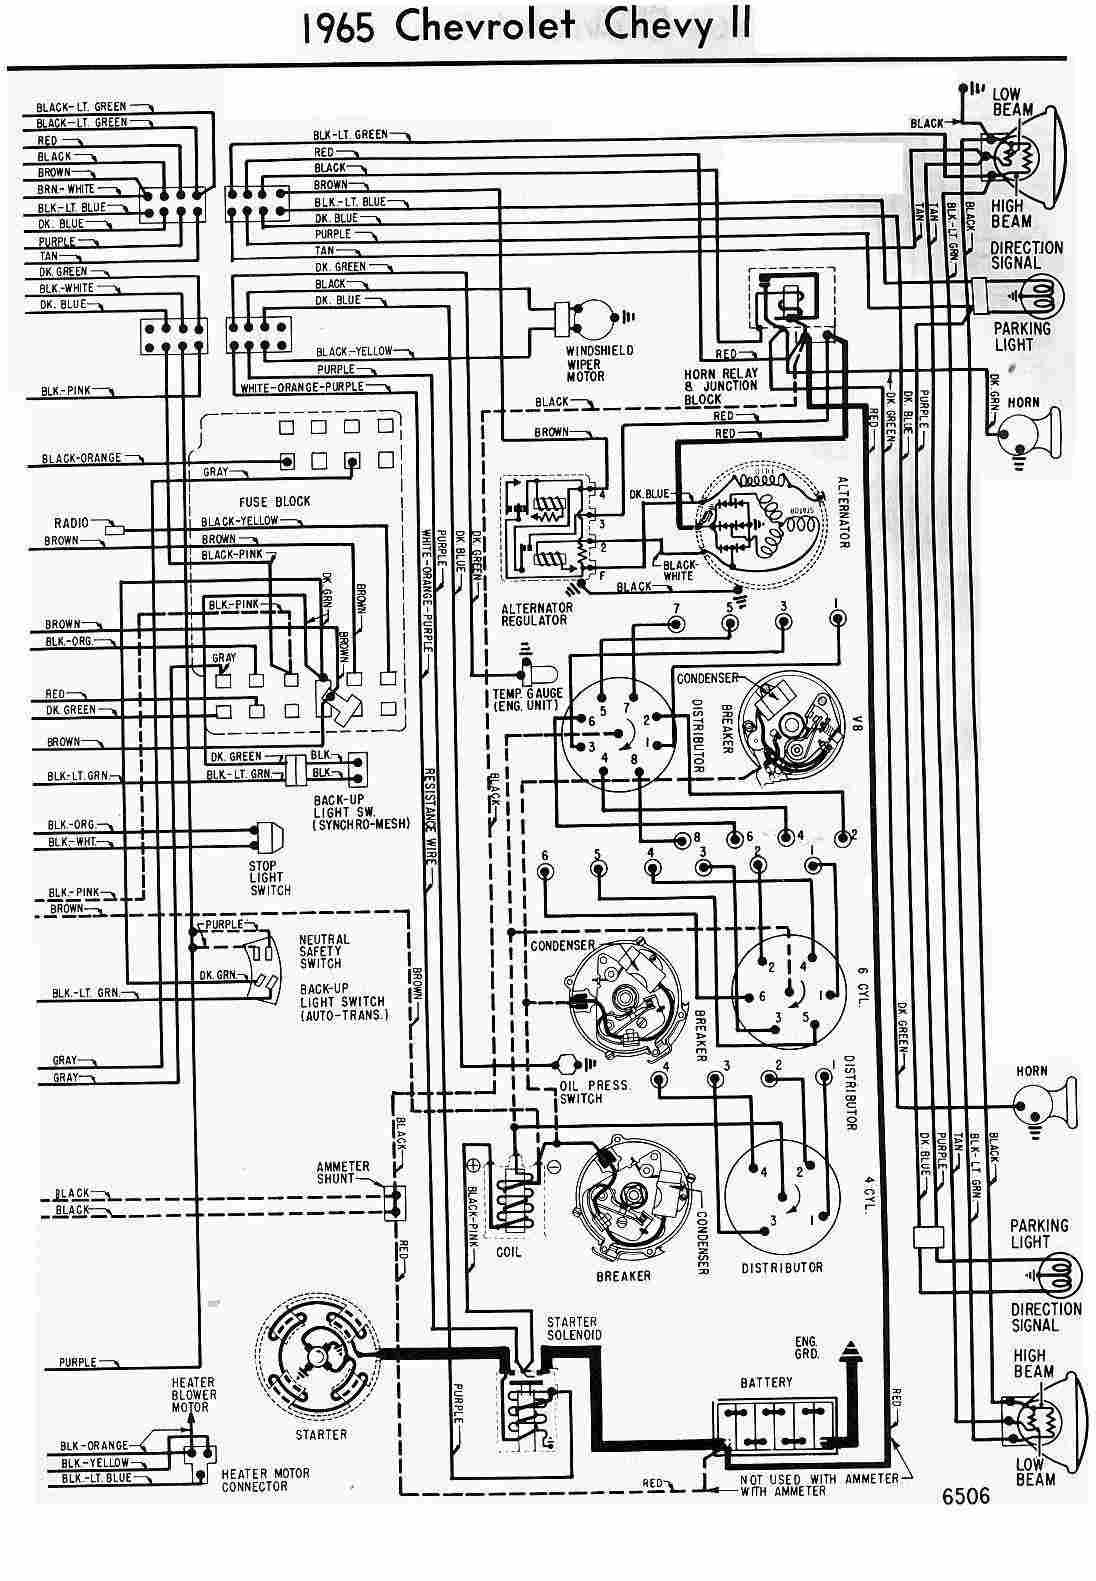 1975 chevy truck wiring harness wiring diagram ebook1975 nova wiring harness wiring diagram1971 chevy nova wiring [ 1096 x 1581 Pixel ]